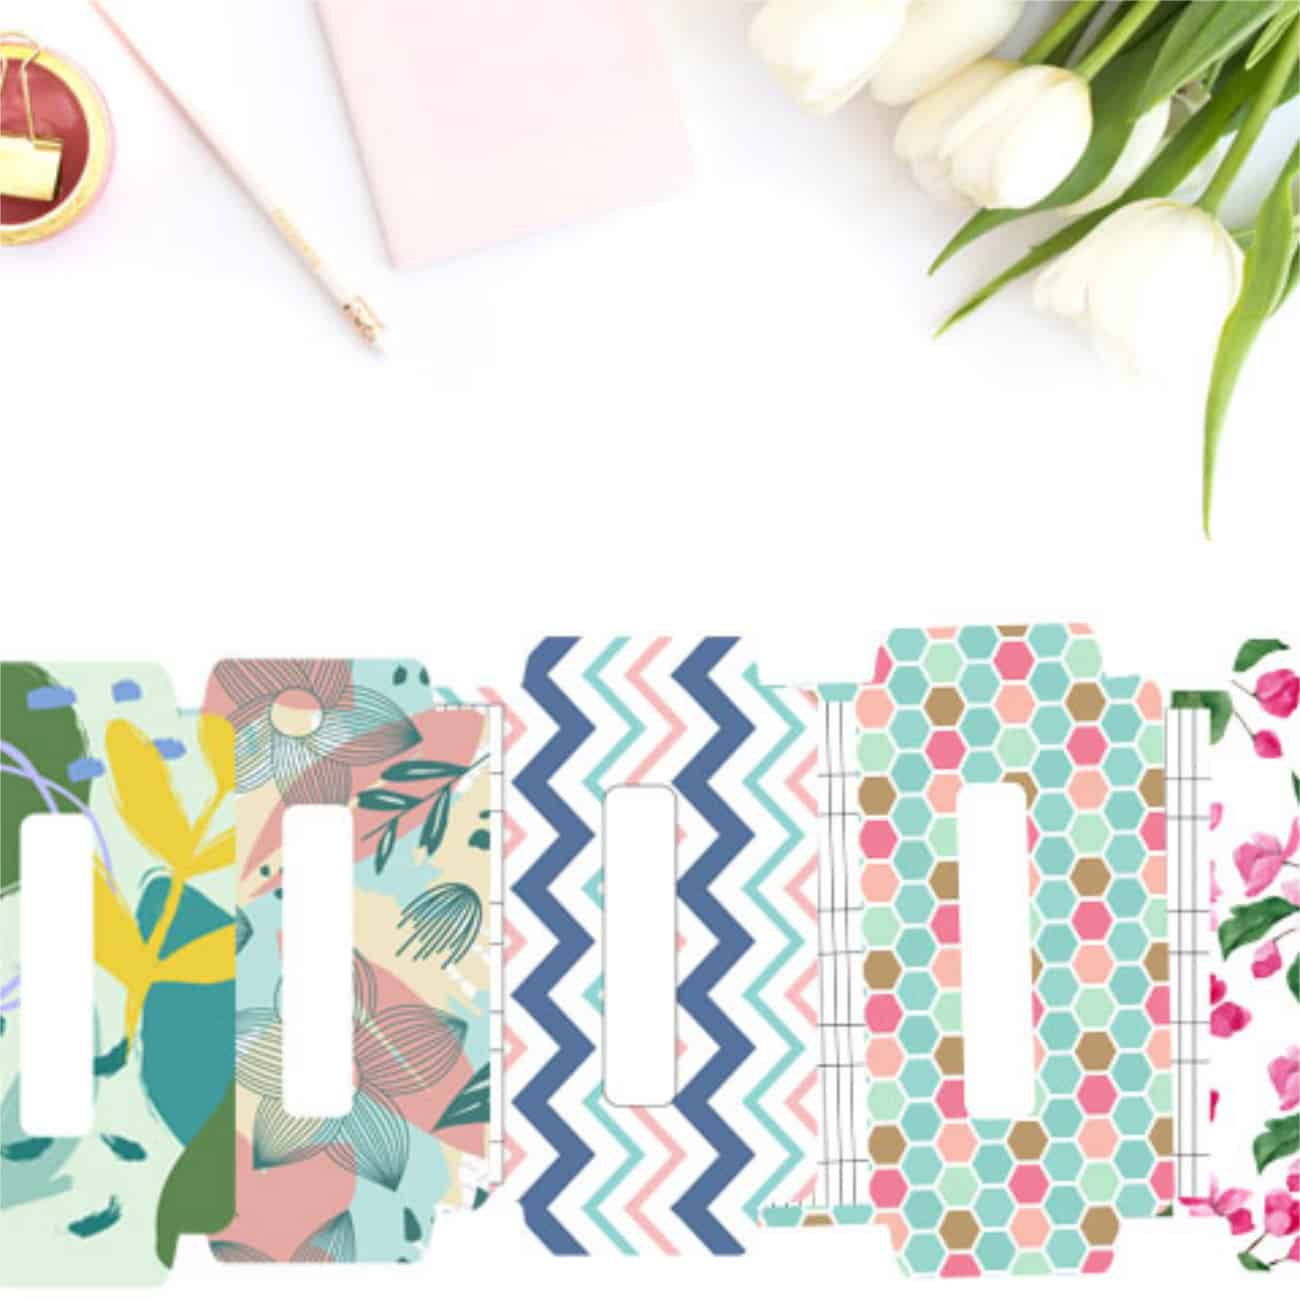 preview of free cash envelope templates with gorgeous, feminine designs like florals, hexagons, chevron, and botanical patterns.